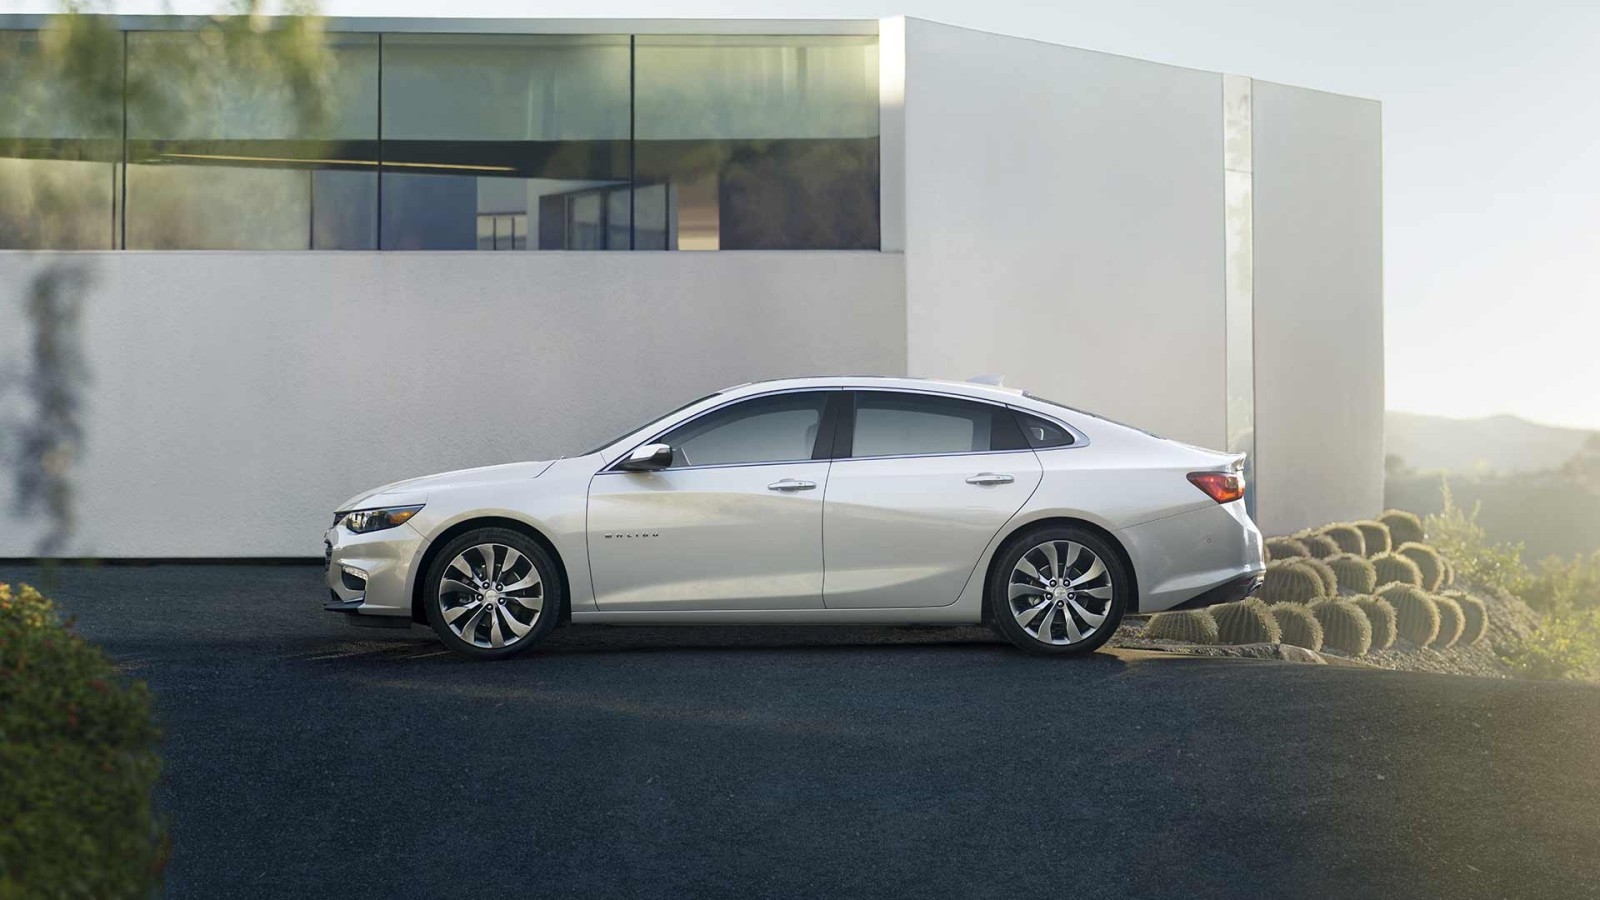 ... you already know that you'll have access to some of the most affordable  new cars on the market. The 2017 Chevrolet Malibu and 2017 Chevrolet Impala  ...